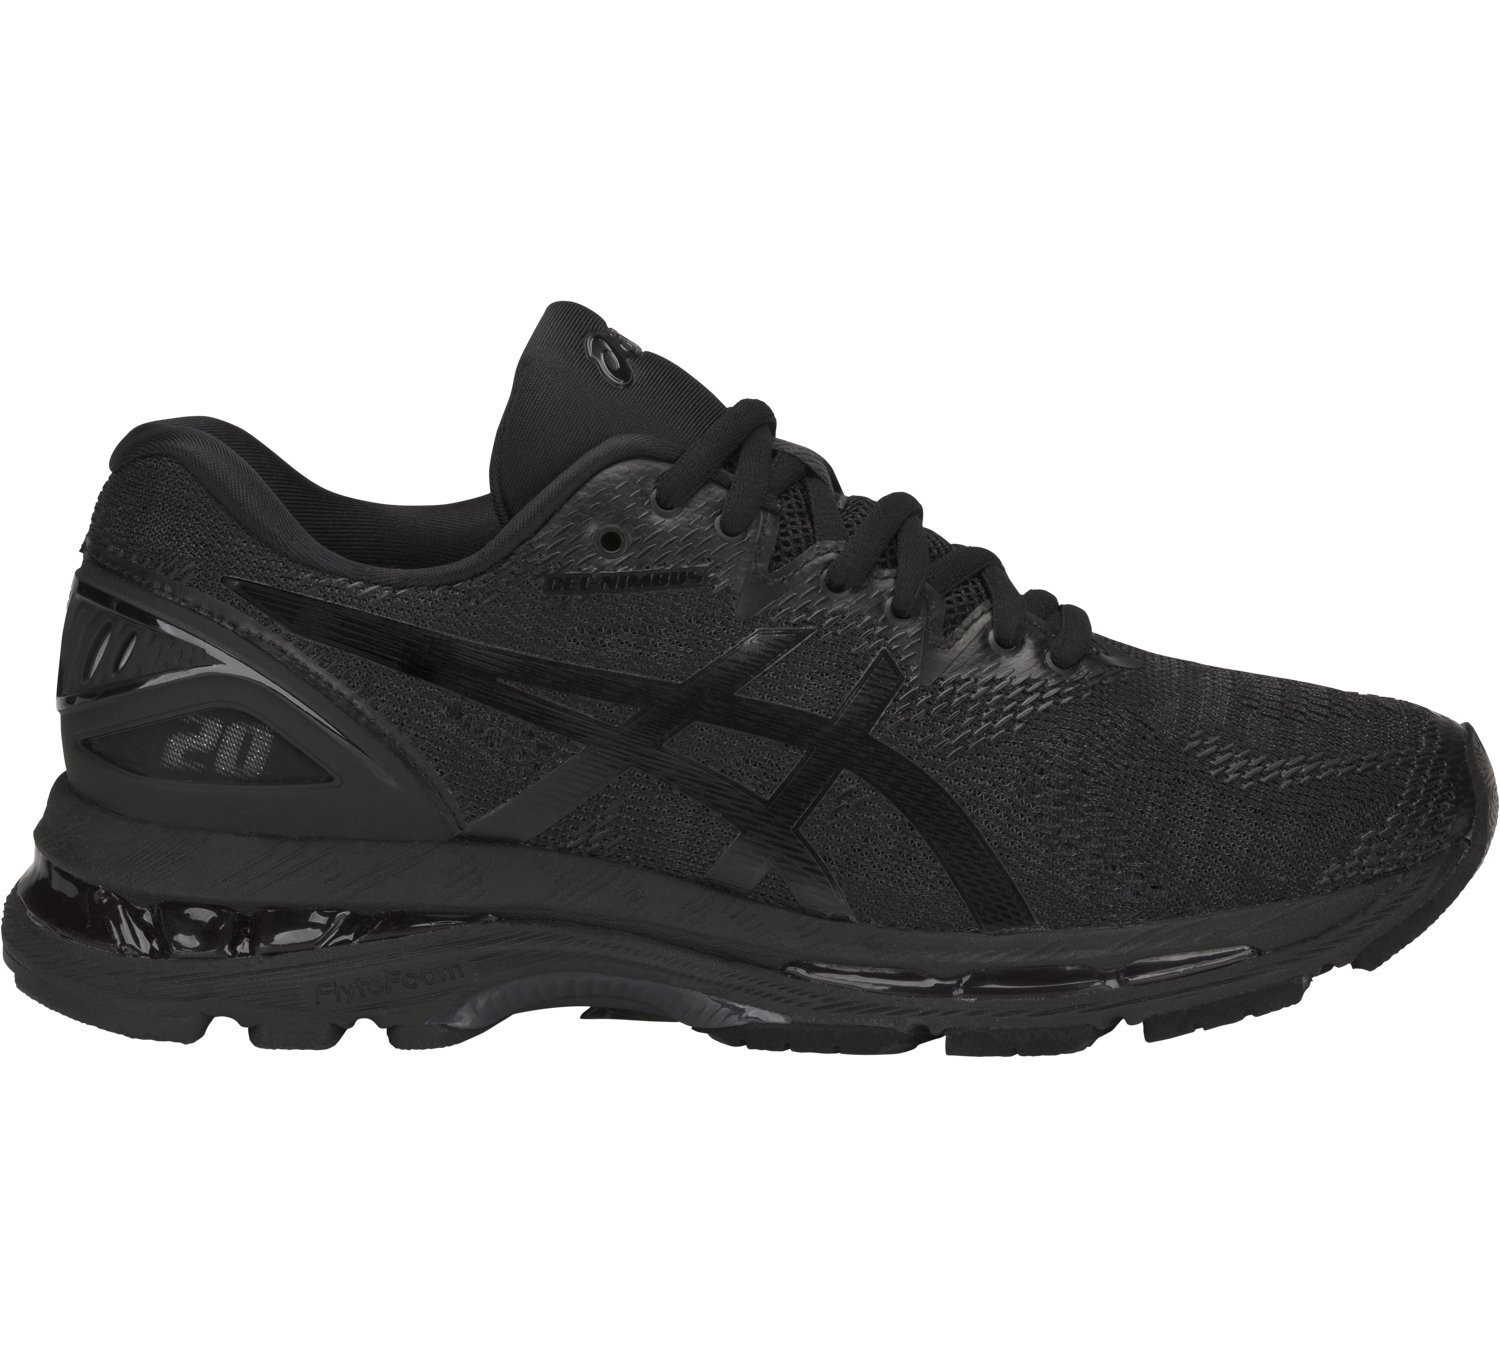 ASICS Women's Gel-Nimbus 20 Running Shoe, black/black/carbon, 6.5 Medium US by ASICS